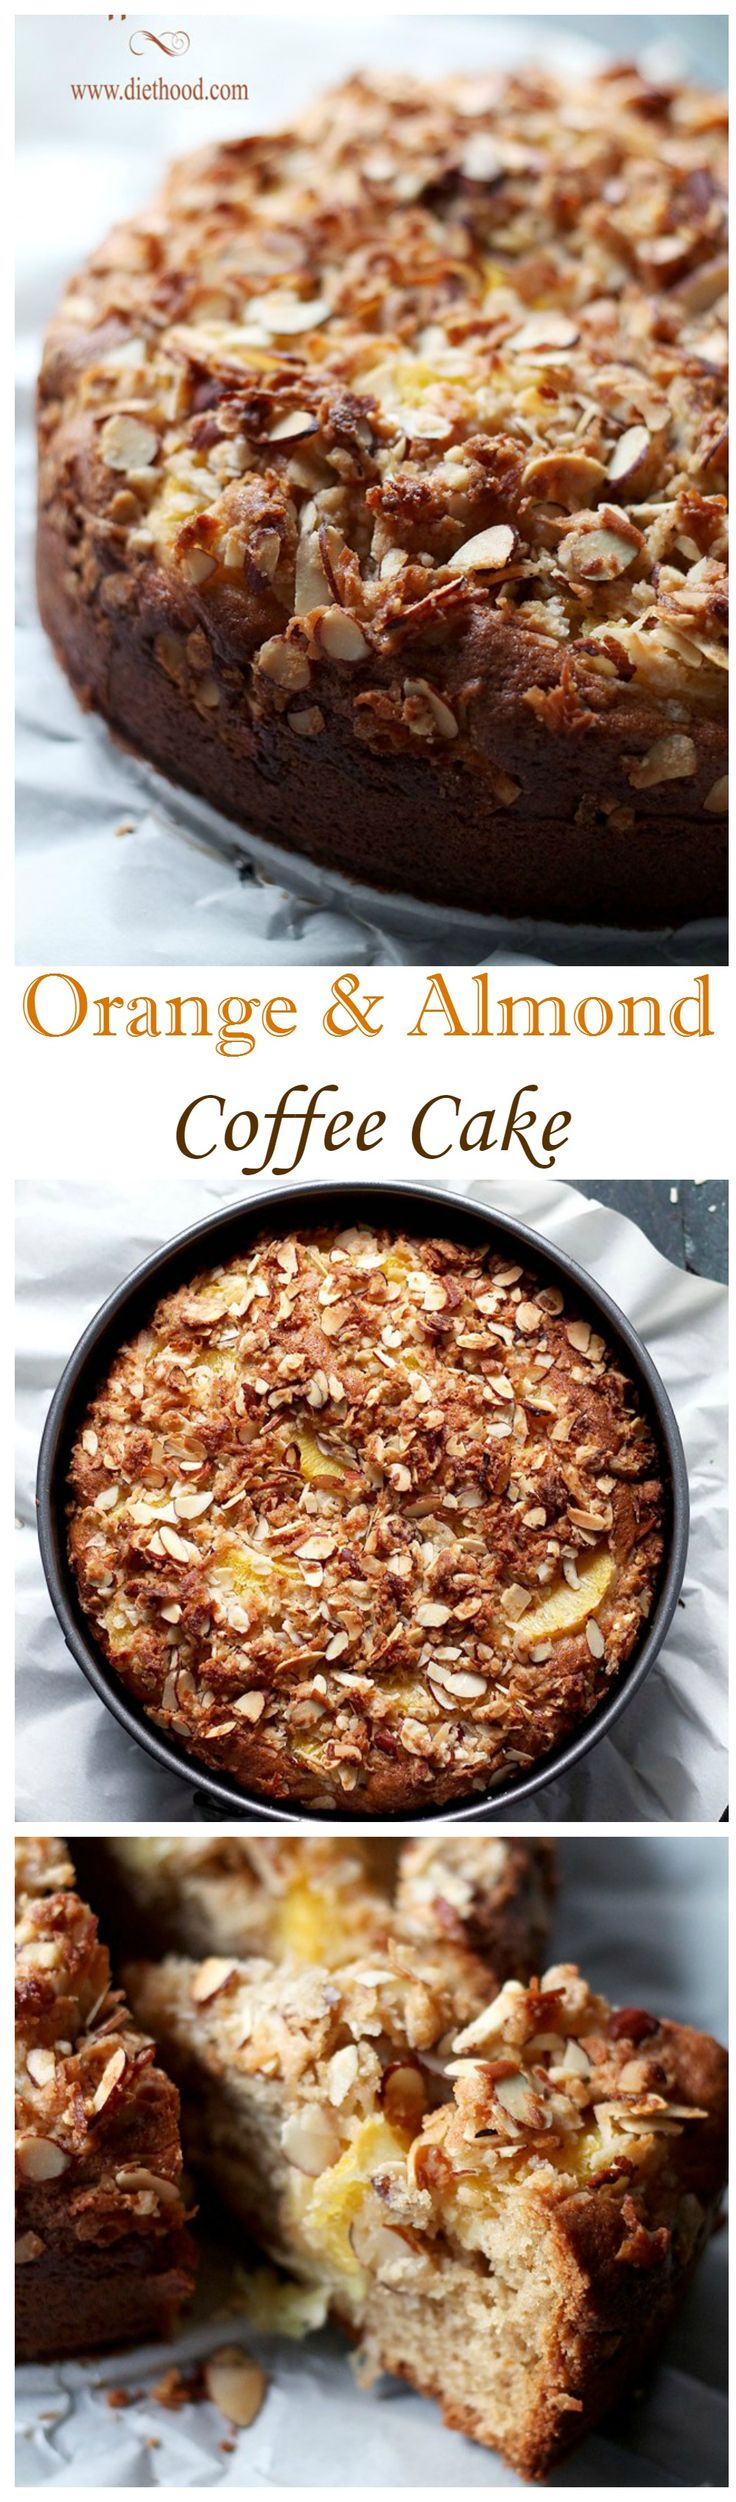 Tender, rich, citrusy and sweet Orange coffee cake topped with a delicious Almond and Coconut Streusel topping.